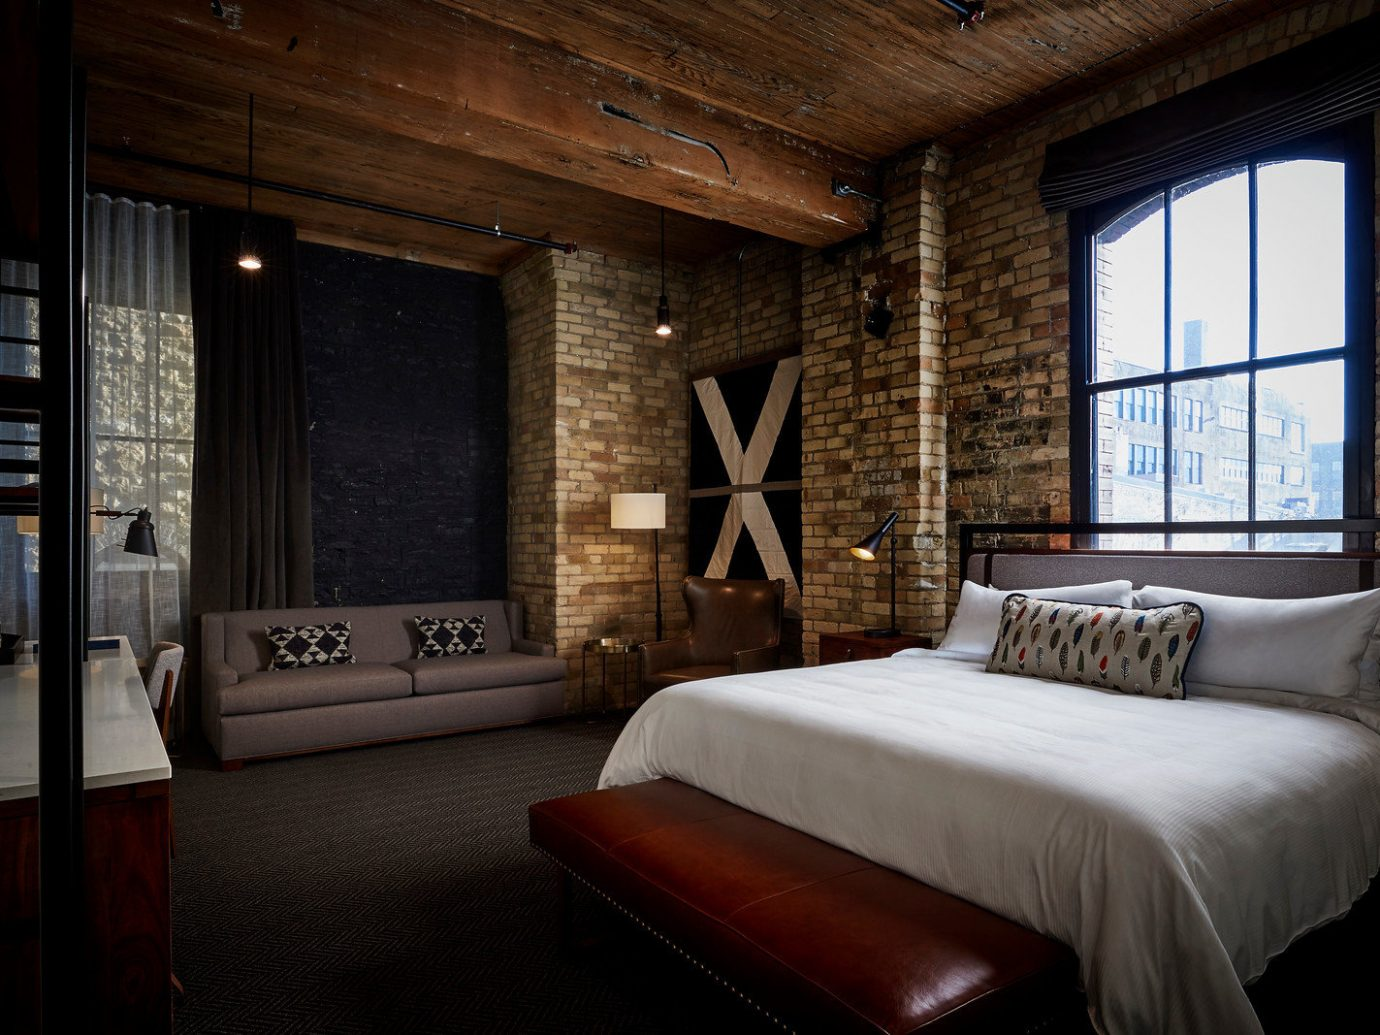 Hewing Hotel, Minneapolis, Minnesota